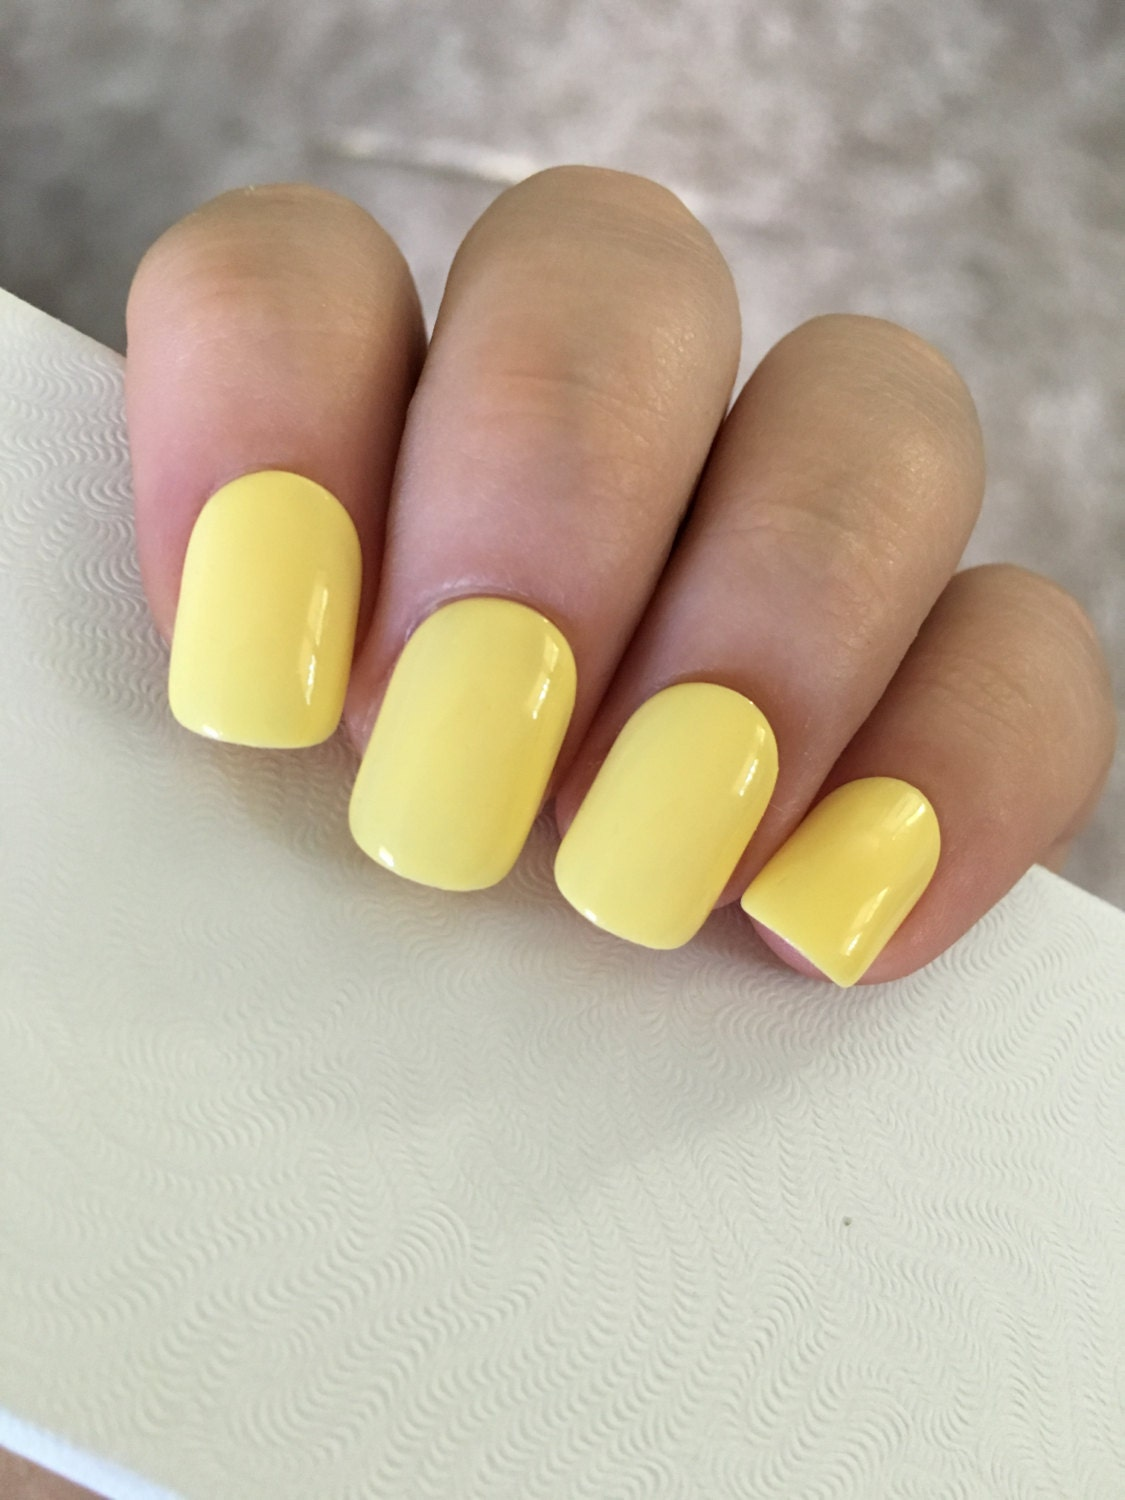 Stiletto Nails Matte Pastel Yellow Coffin